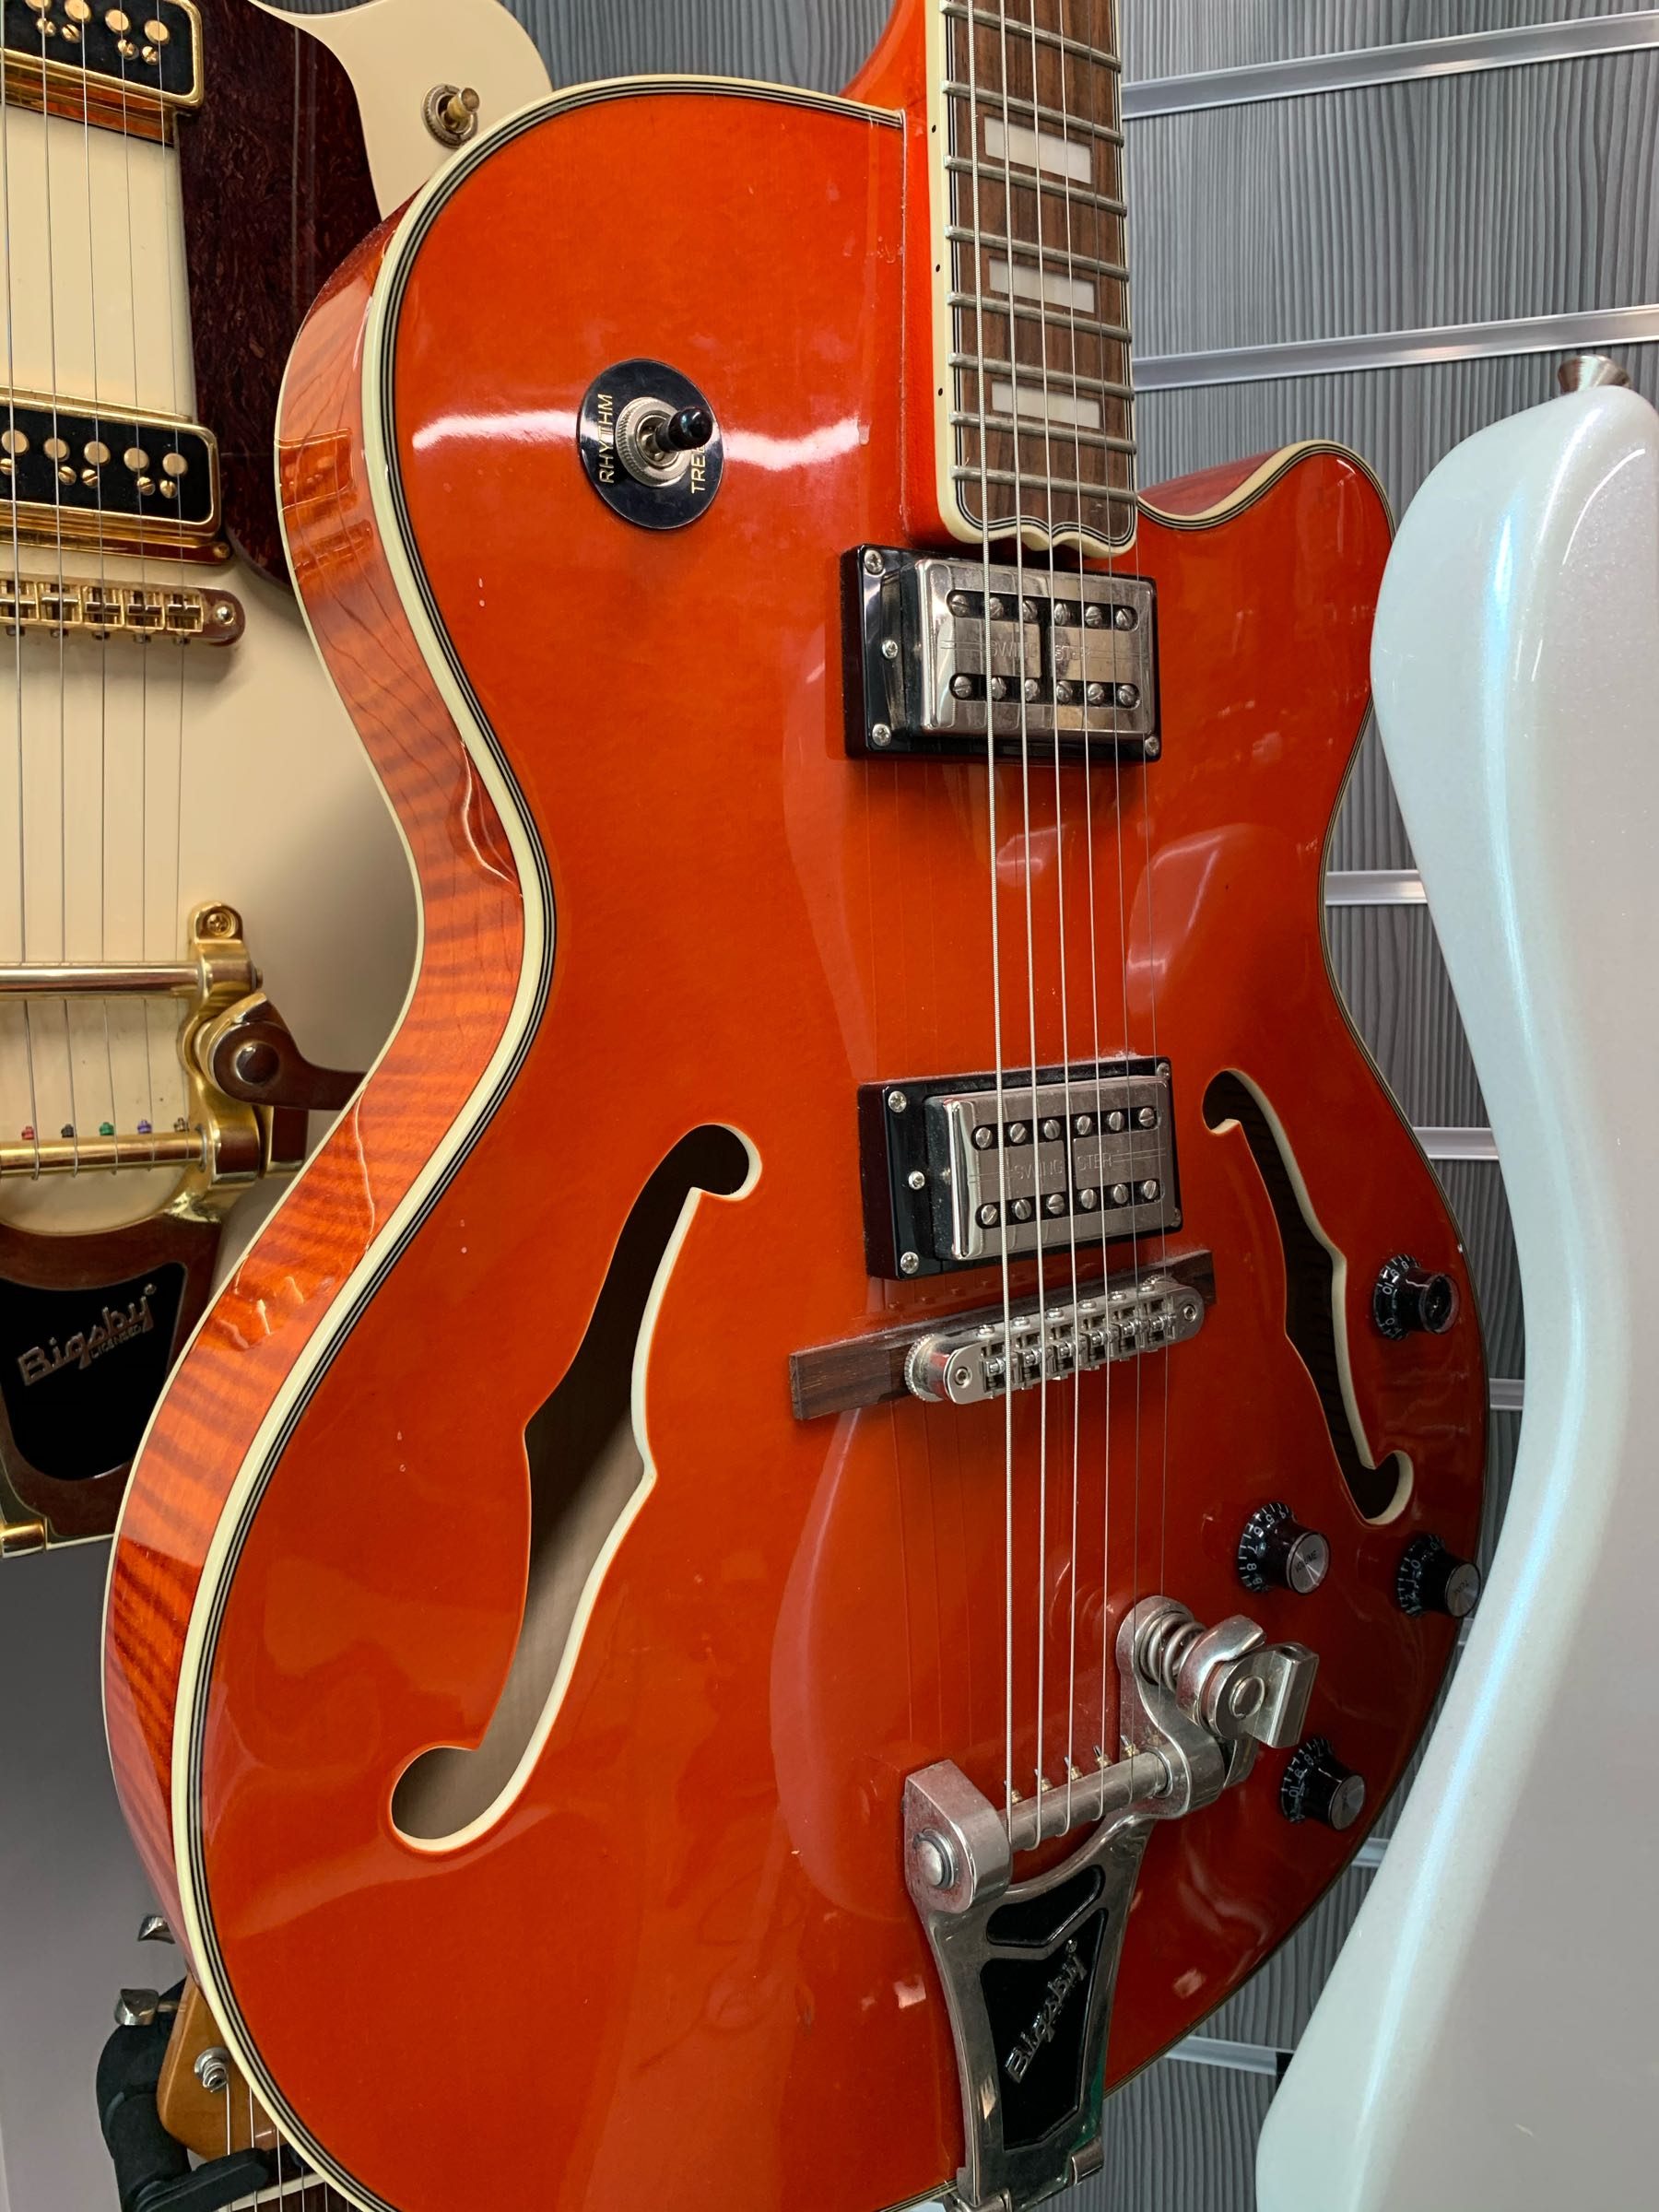 Epiphone Swingster Orange